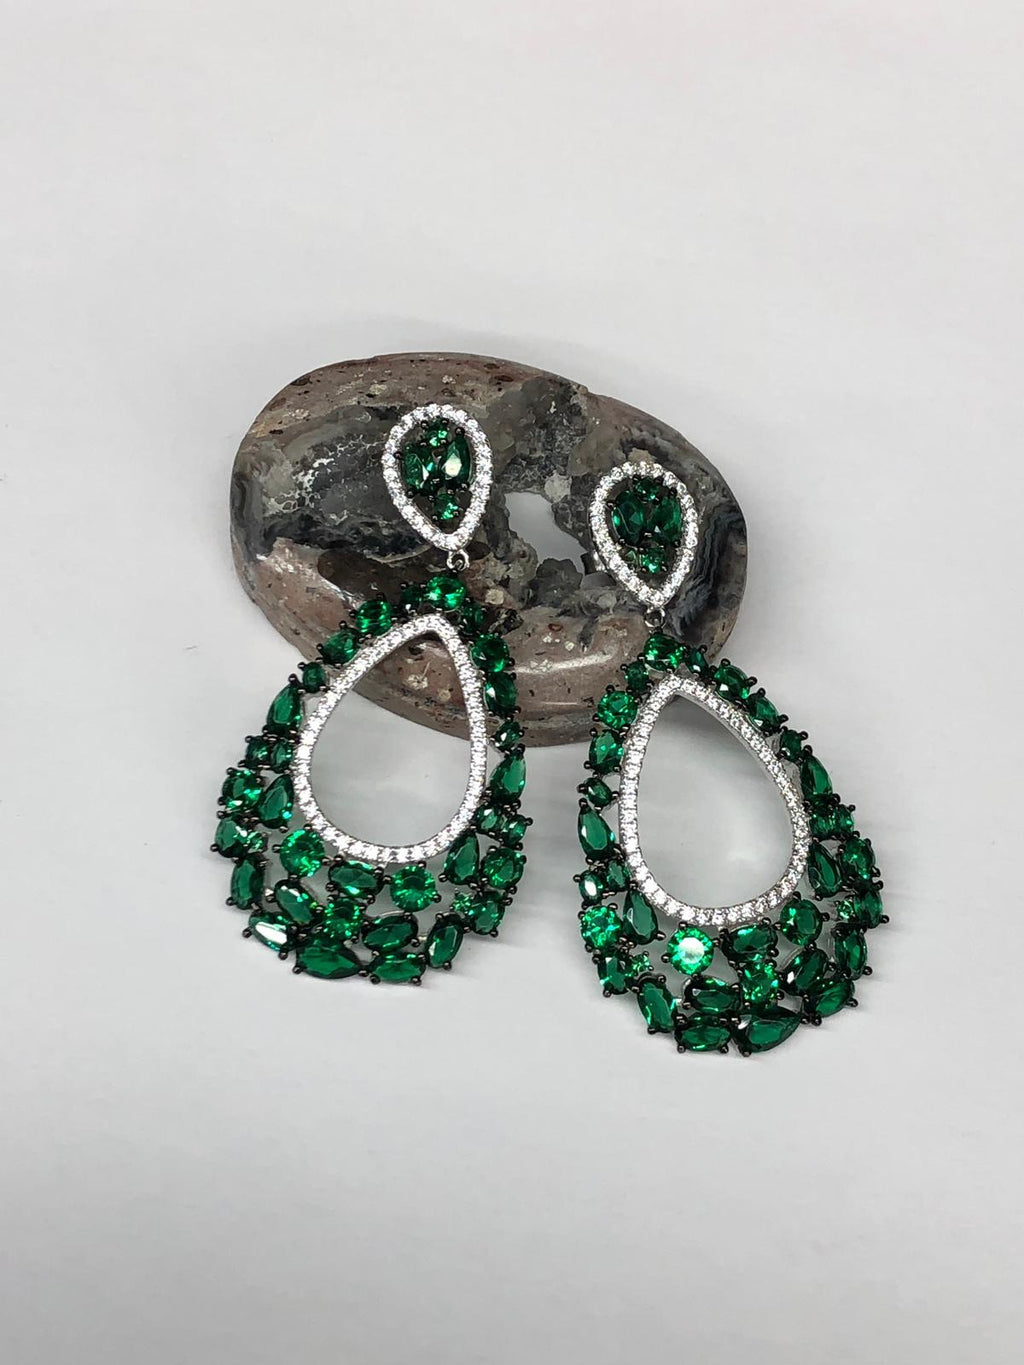 Exquisite Detailed Teardrop Earrings